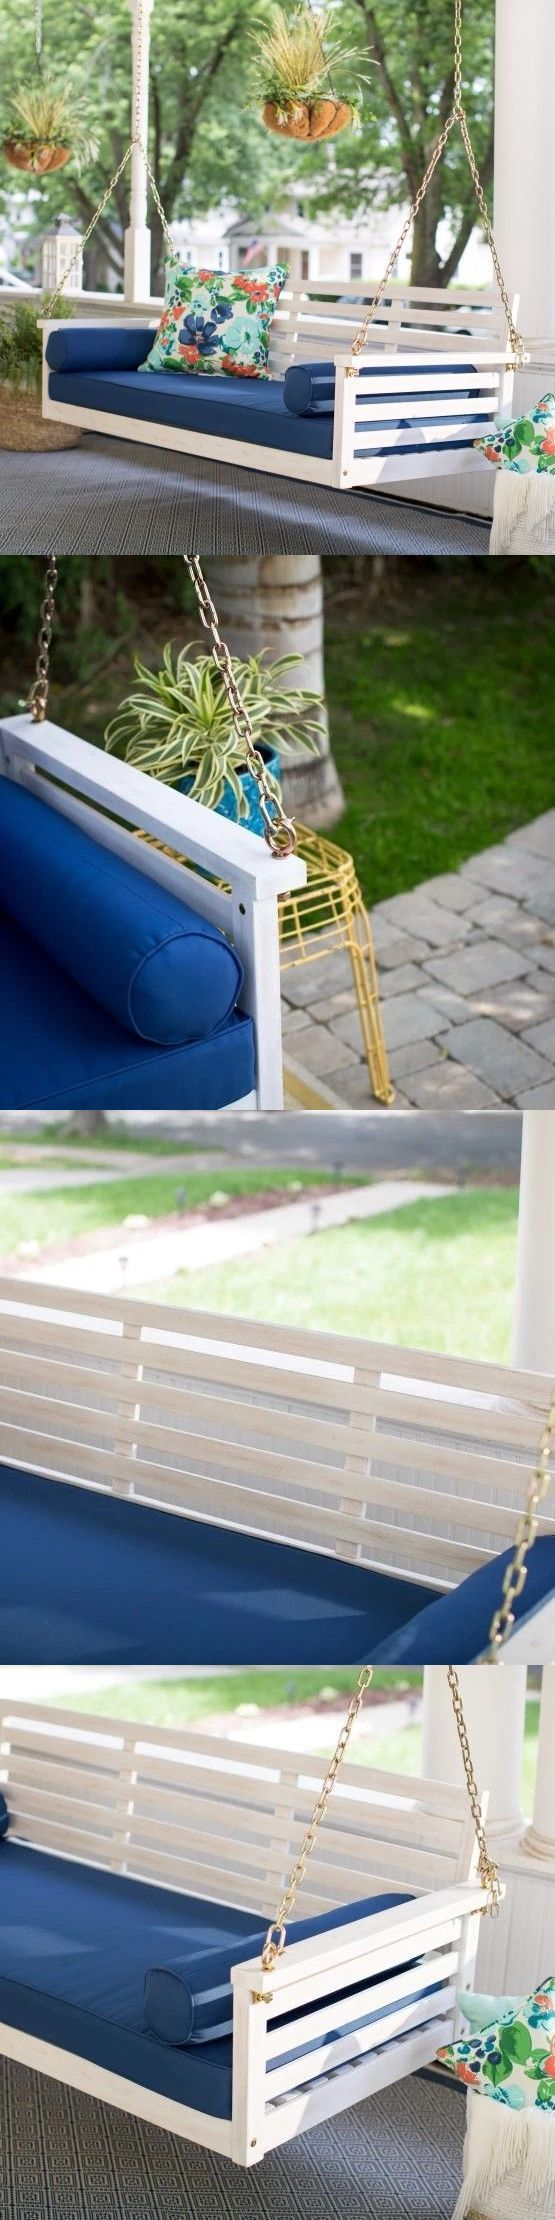 Best 25+ Porch swing beds ideas on Pinterest | Porch bed, Hanging ...